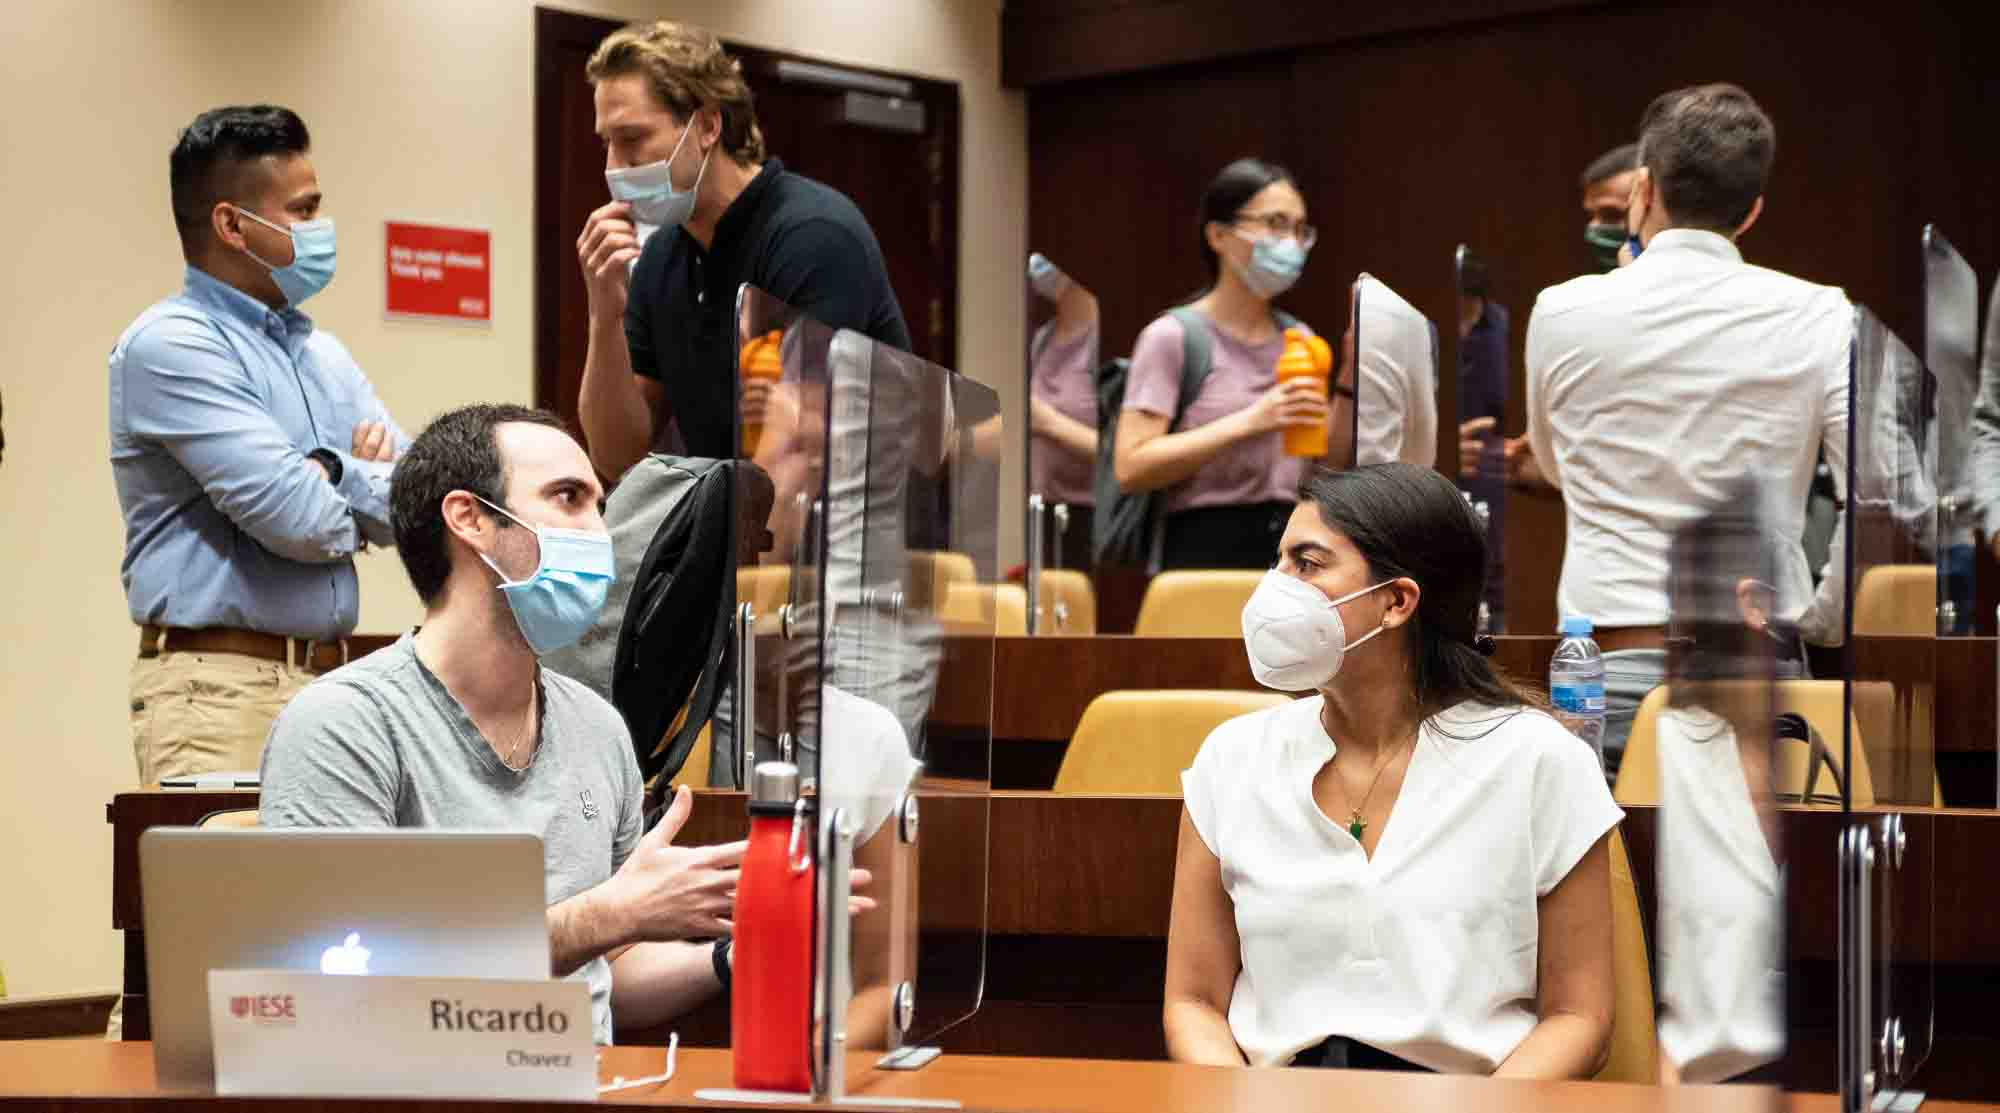 More than 500 IESE master program students begin face-to-face courses